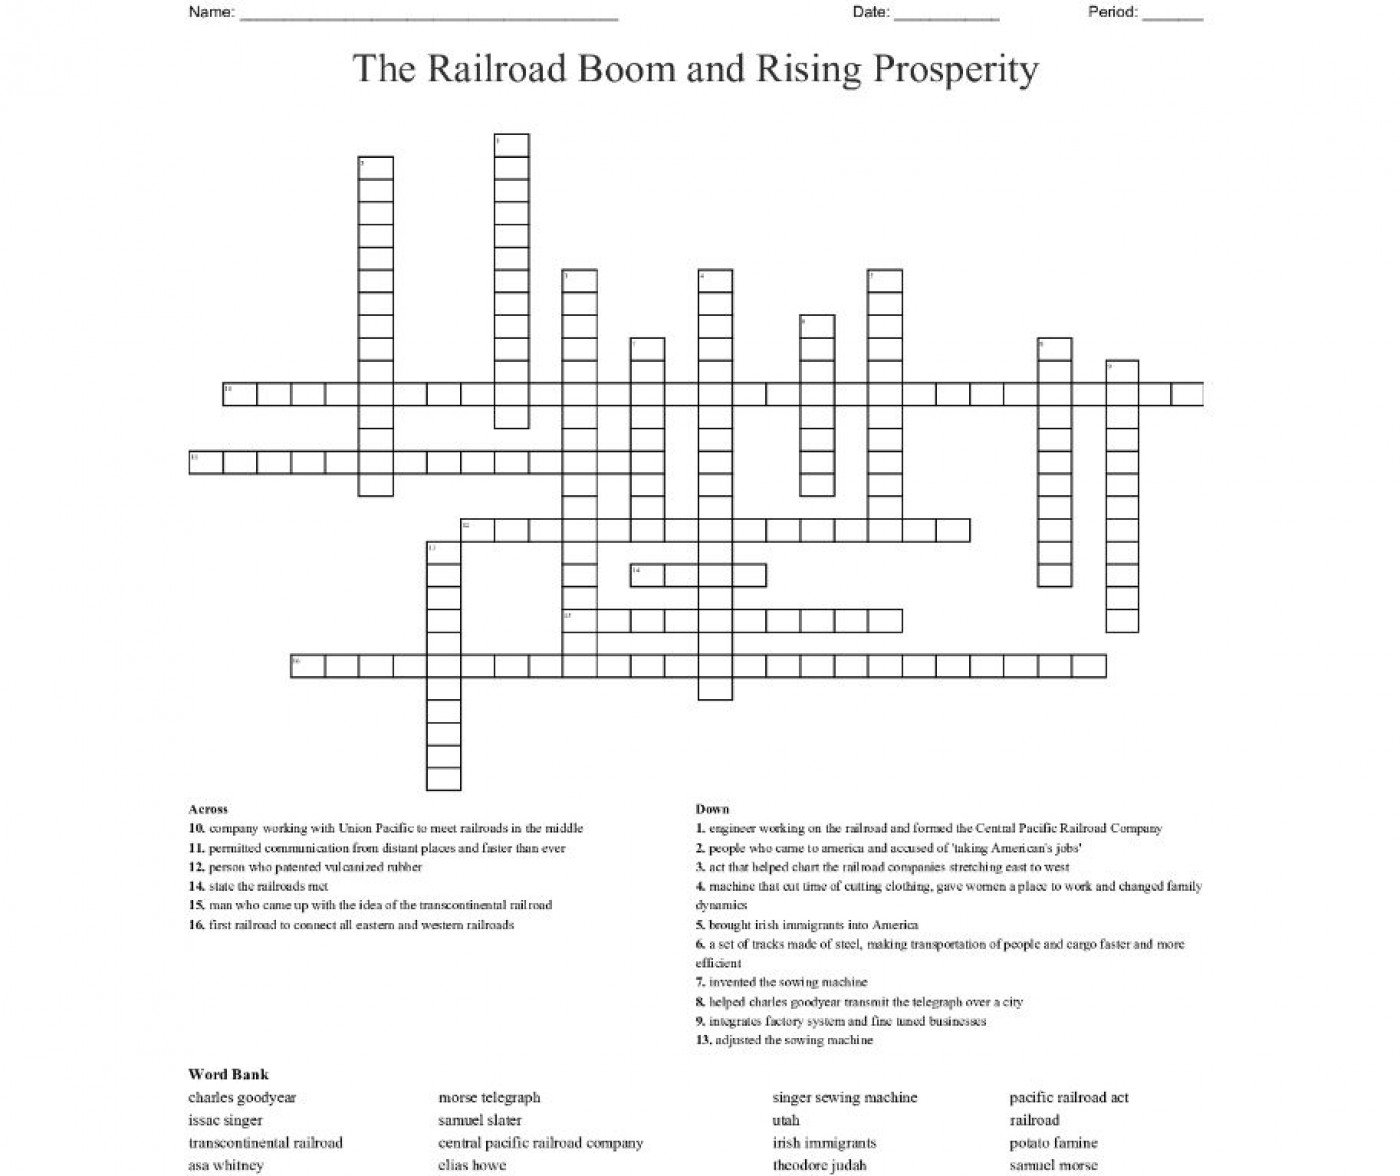 004 Unusual Prosperity Crossword Sample  Hollow Sound Of Sudden Clue Material 7 Letter1400